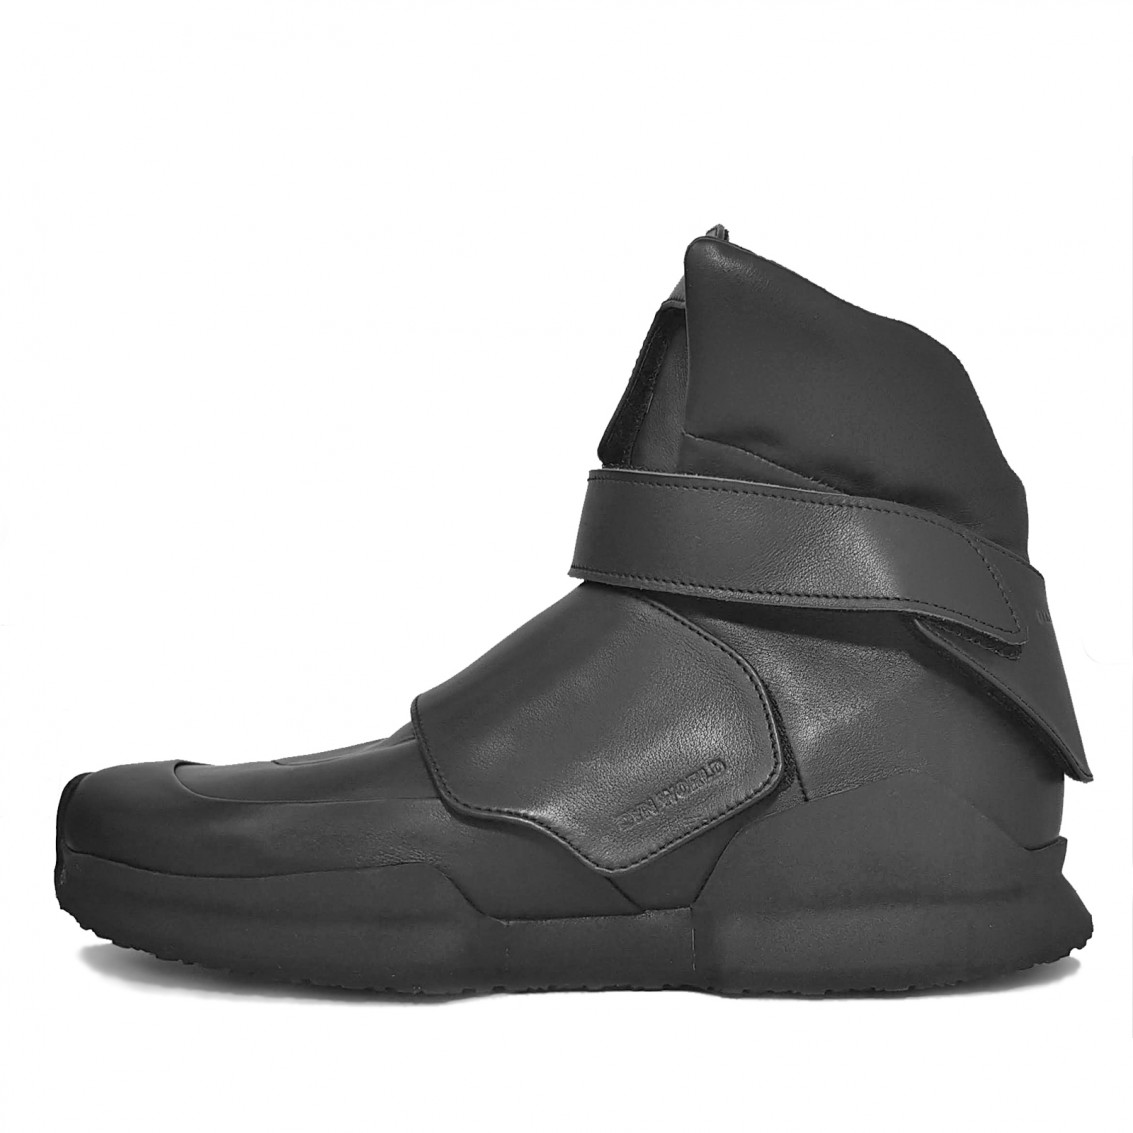 RDS PROTOTYPE TOTAL BLACK. First replacement details high-top sneakers.